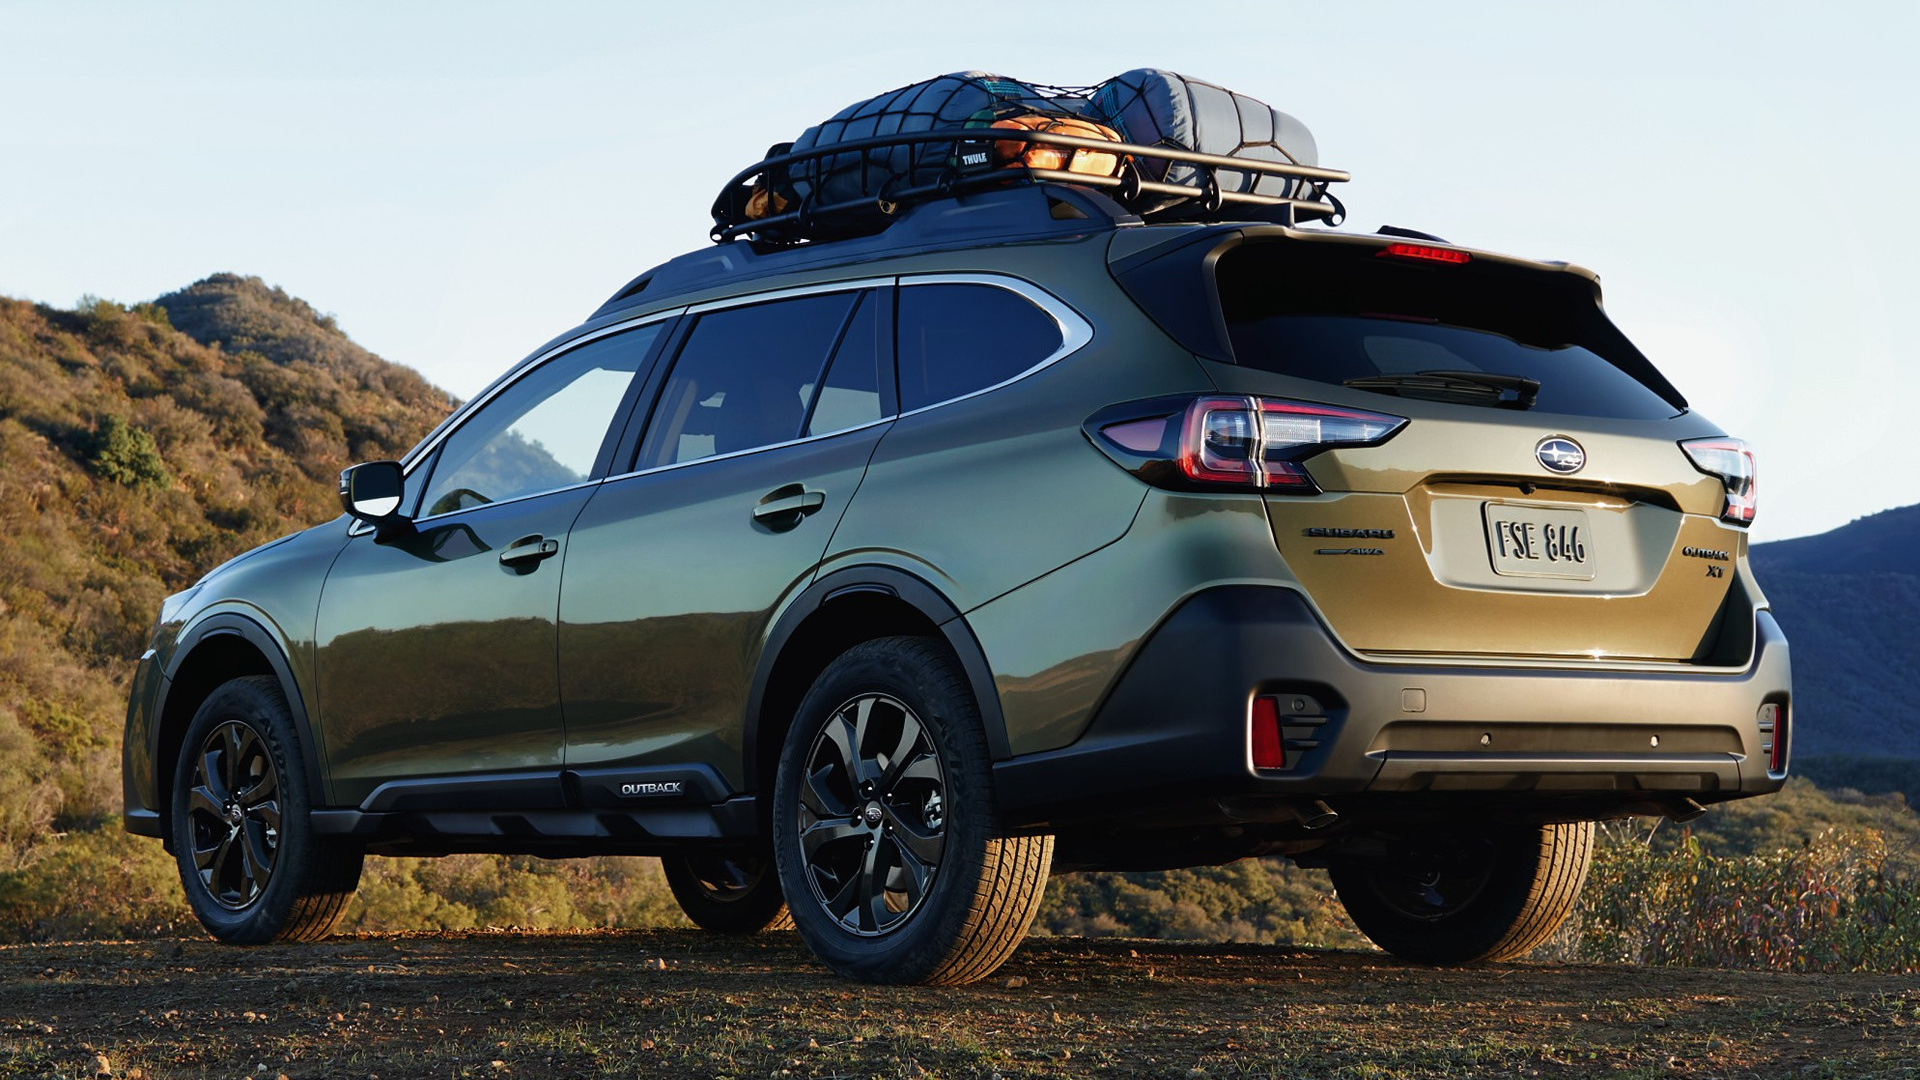 2020 Subaru Outback Xt Onyx Edition Wallpapers And Hd